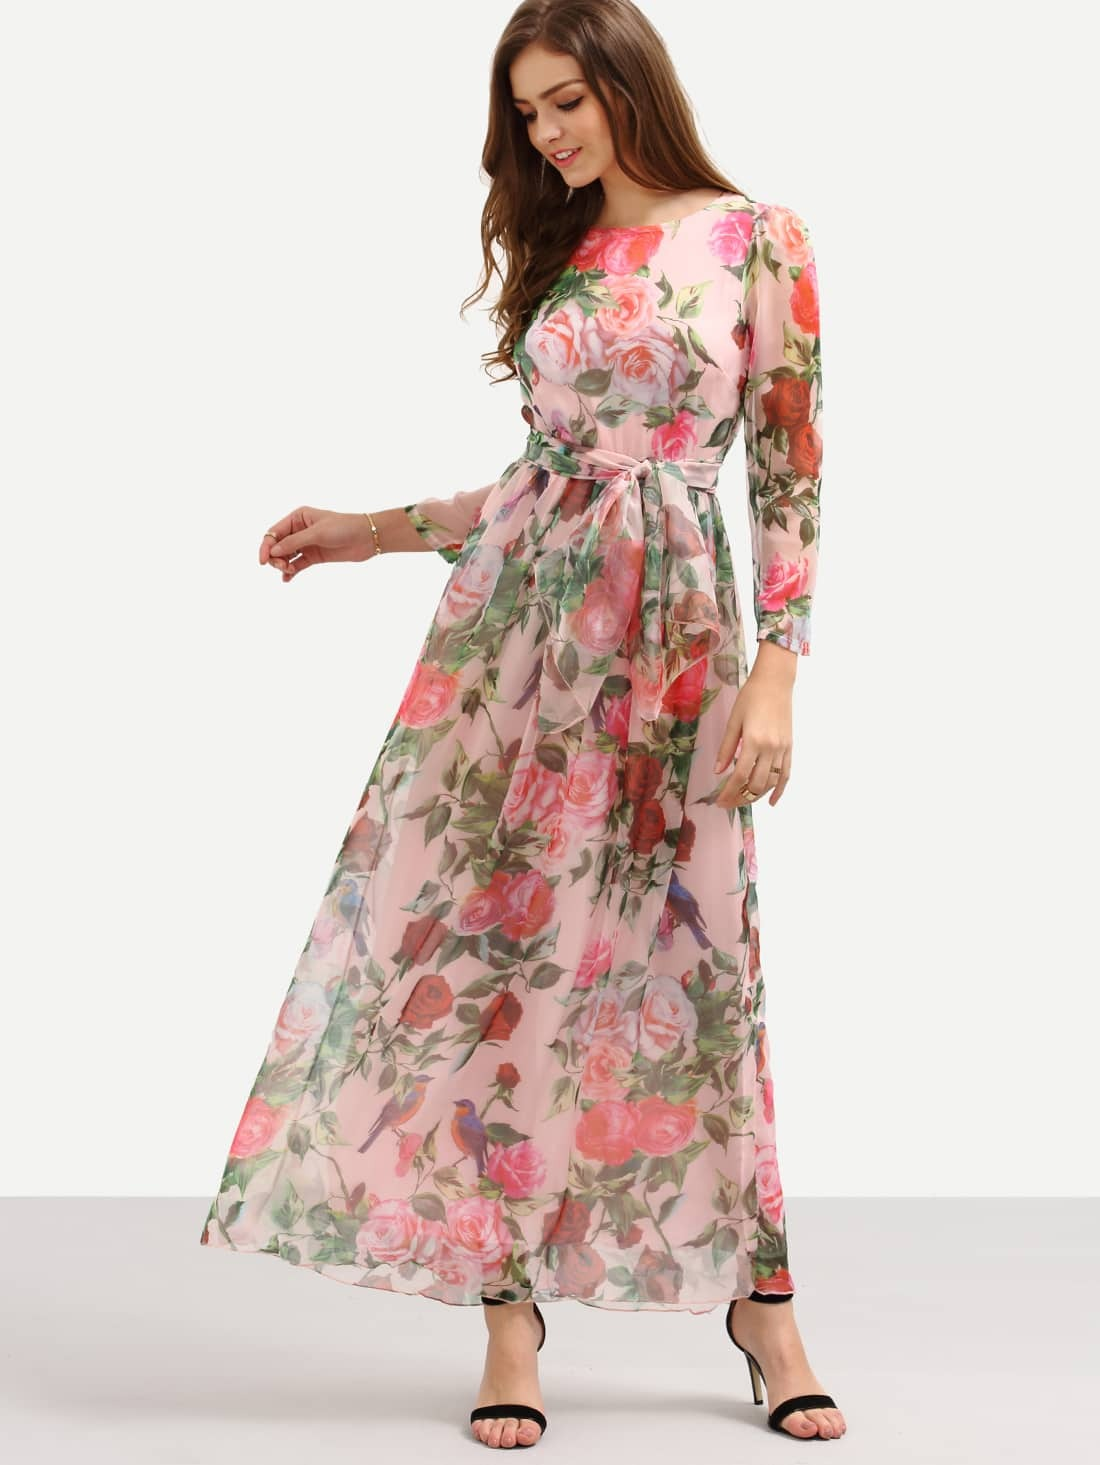 dc1f3463126dfd Self-Tie Rose Print Long Sleeve Chiffon Dress - Pink EmmaCloth ...